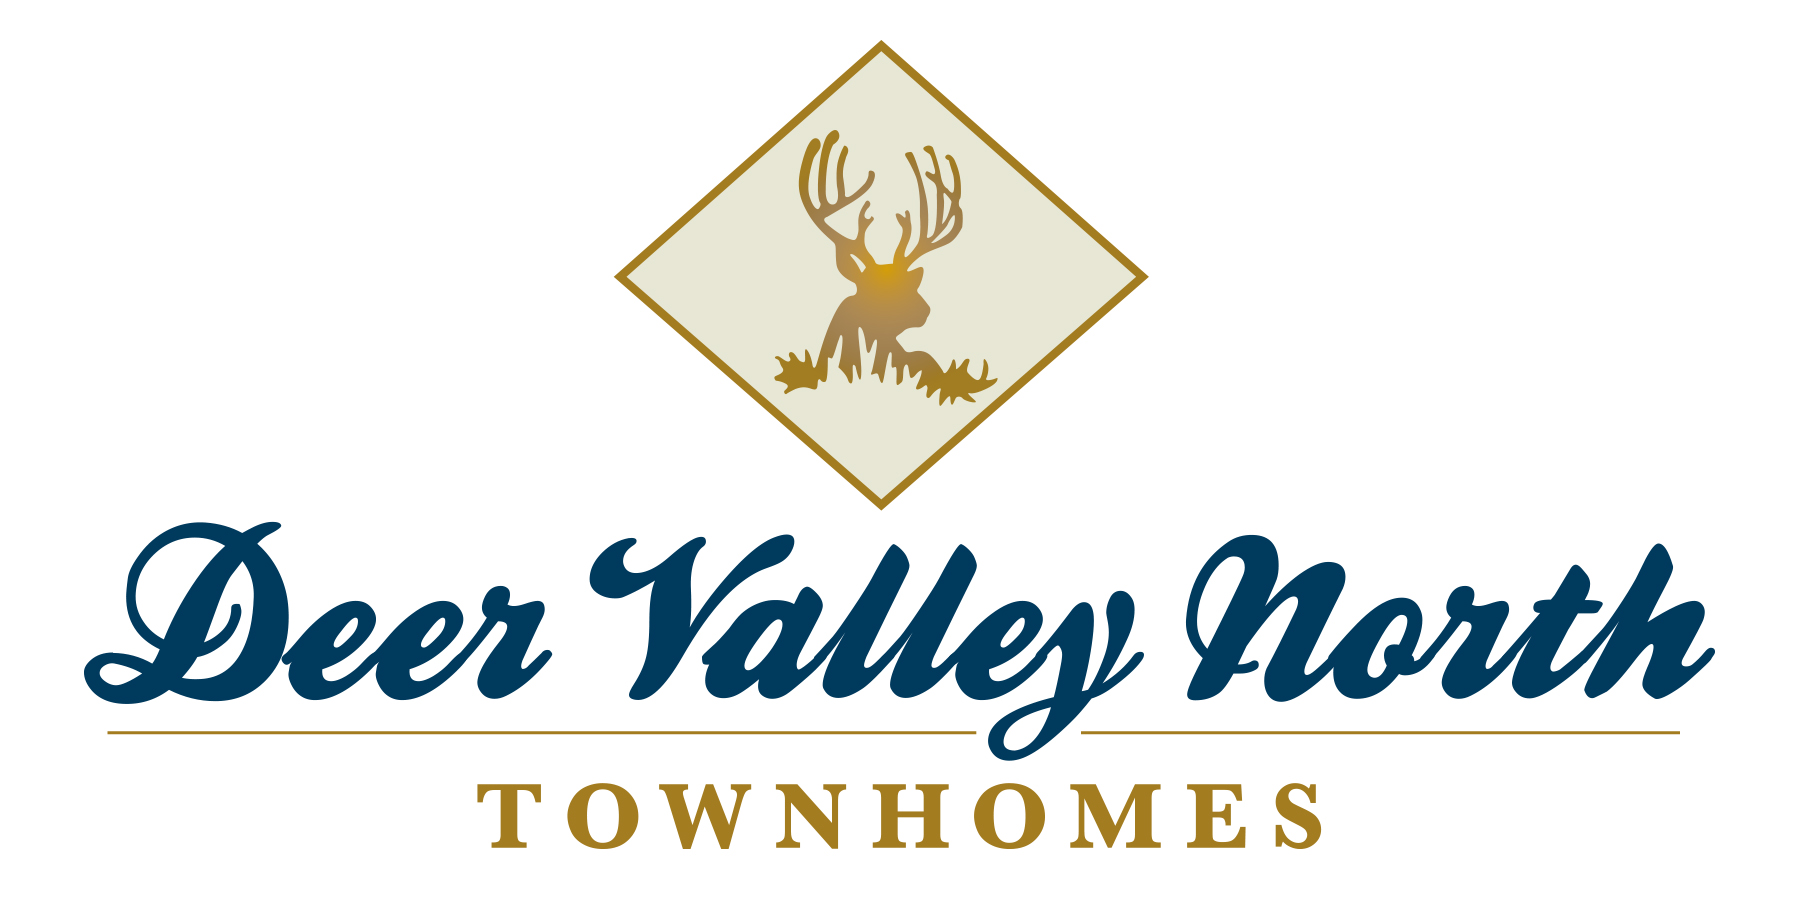 Deer Valley North